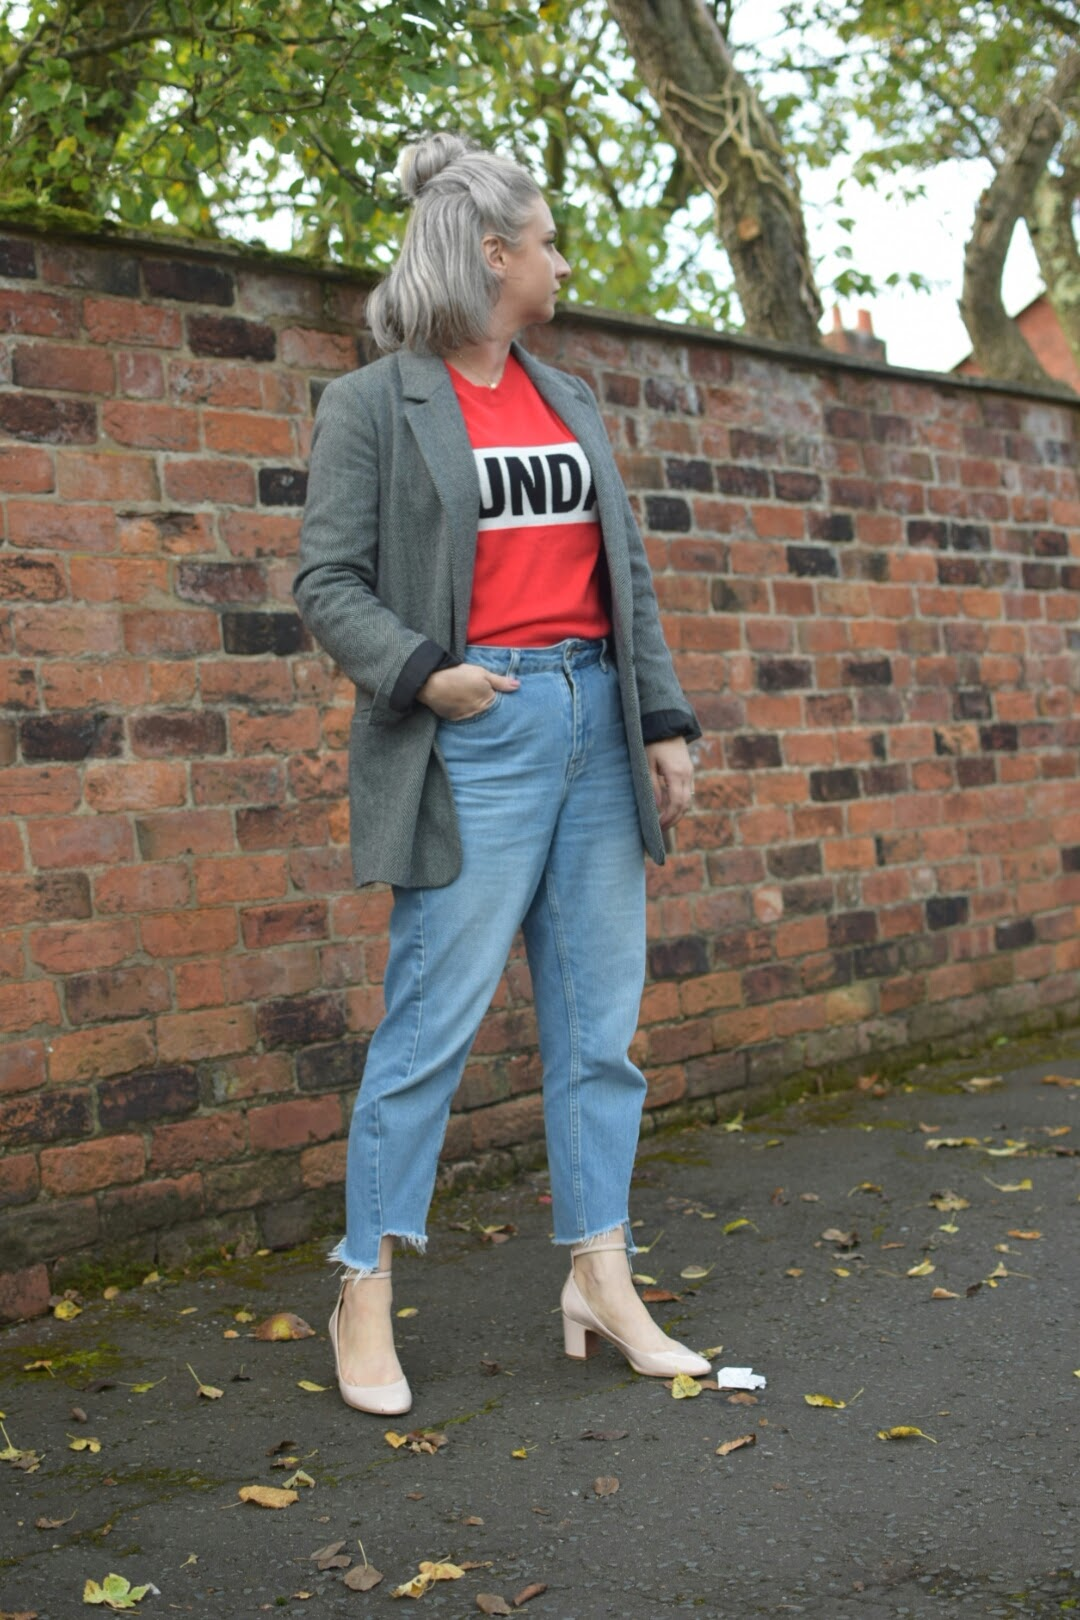 NewLook Red Jumper,Topshop MOM Jeans,Zara Jacquard Blazer,TopshopNude Courts_7